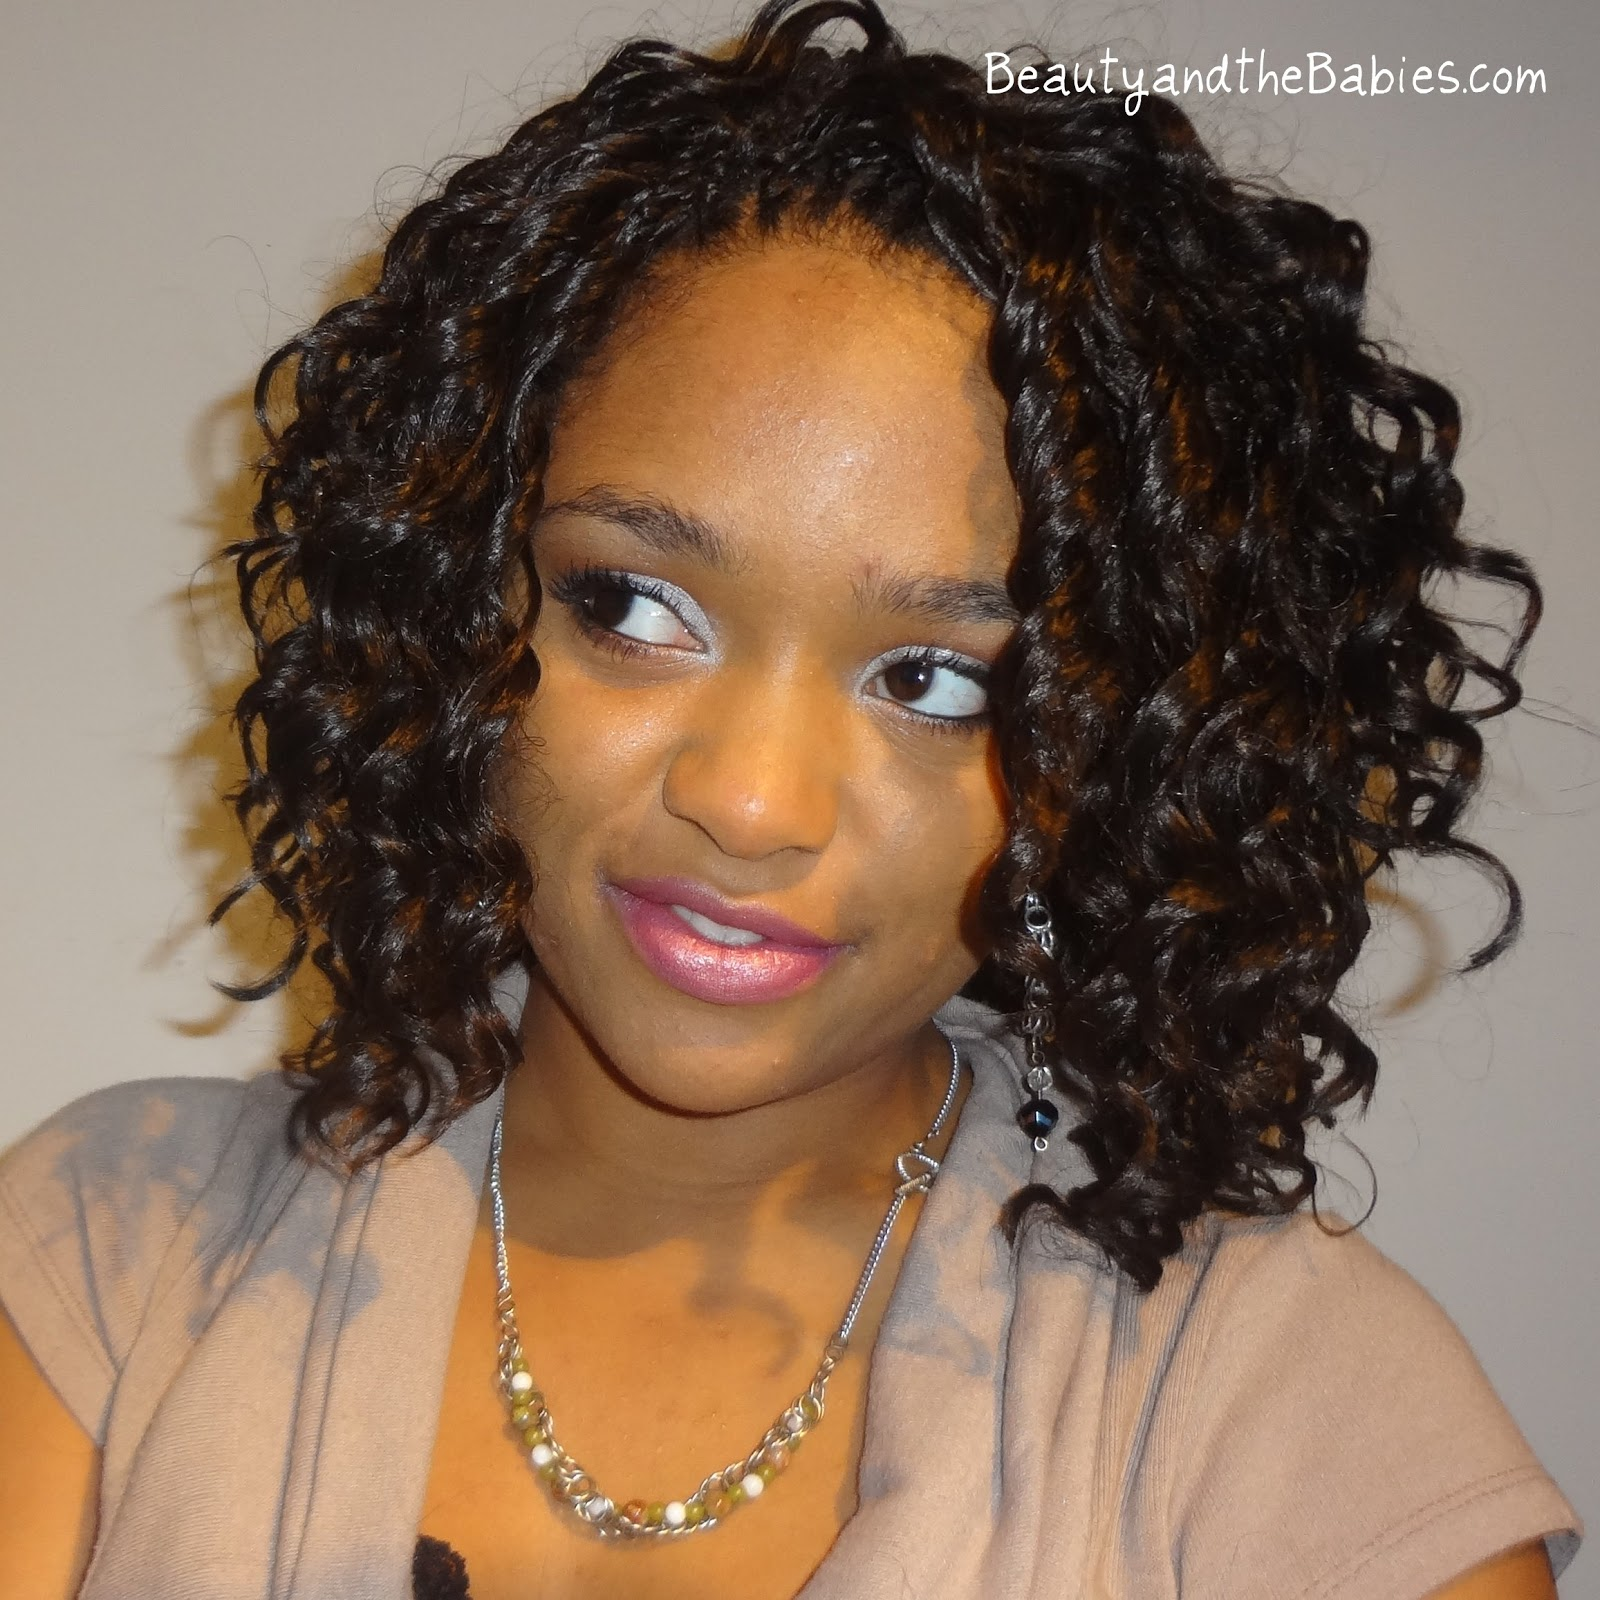 ... . Pinterest Crochet Braids, Braids and Curly Crochet Braids